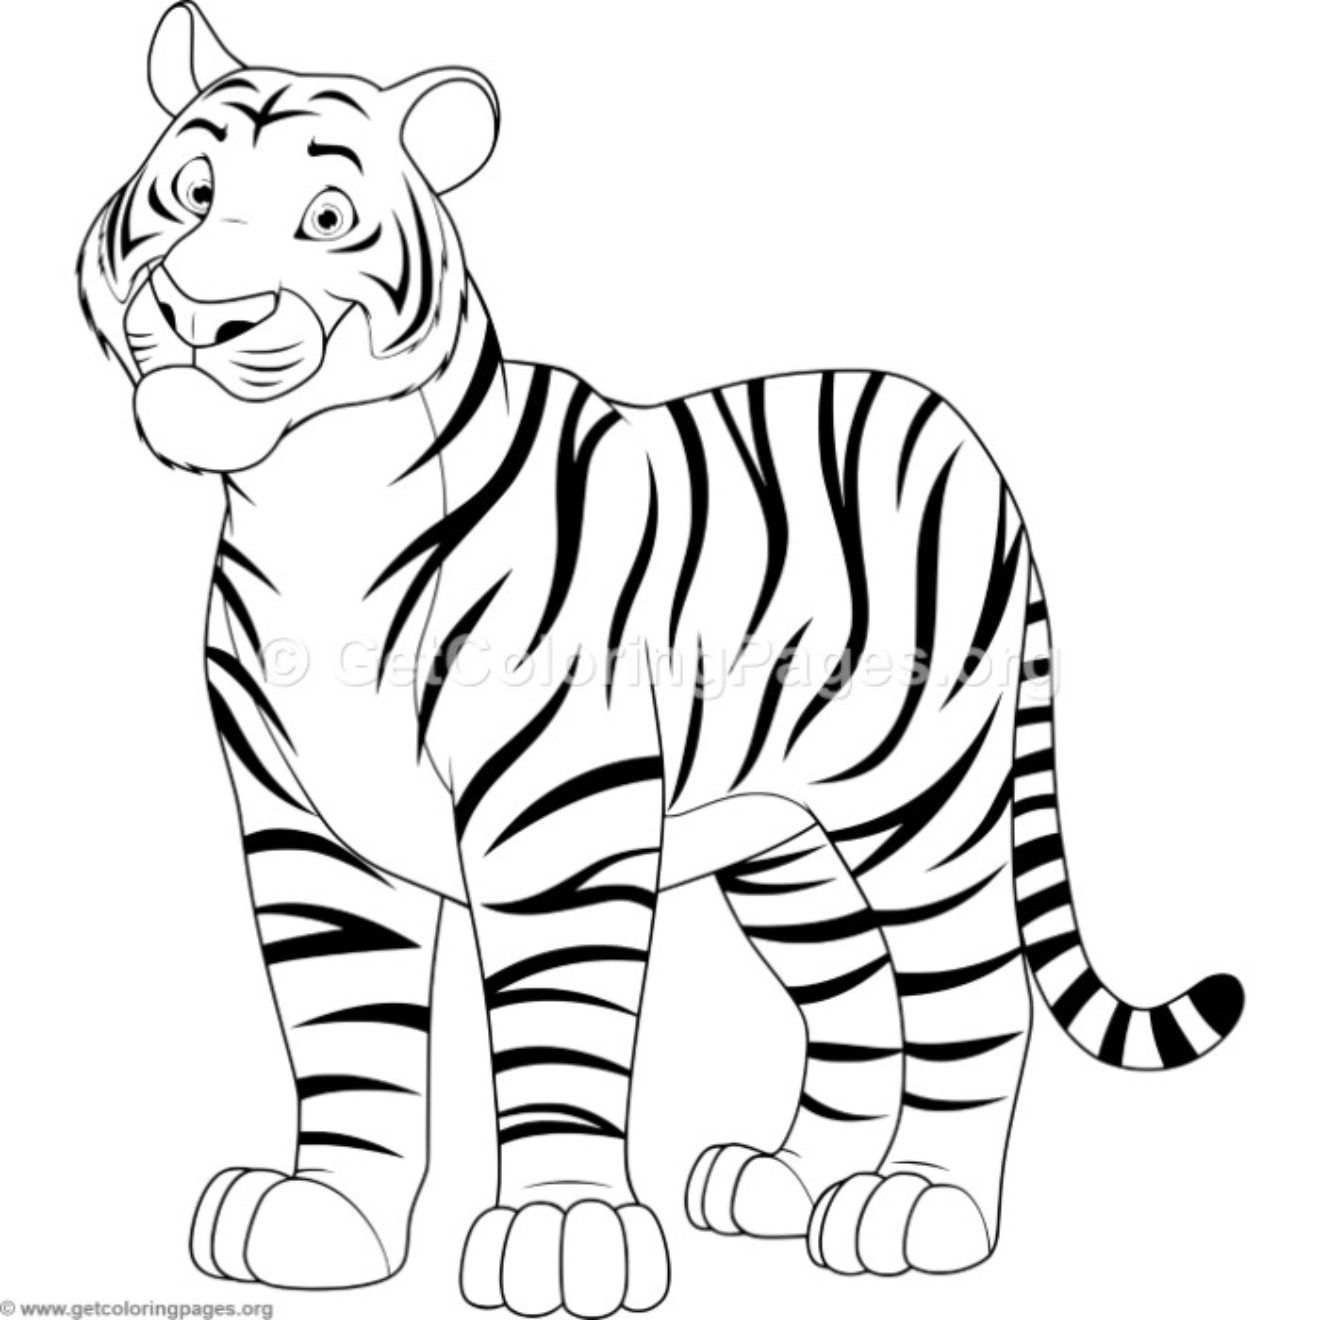 Tiger Coloring Pages Getcoloringpages Org In 2021 Tiger Drawing Easy Drawings Tiger Drawing For Kids